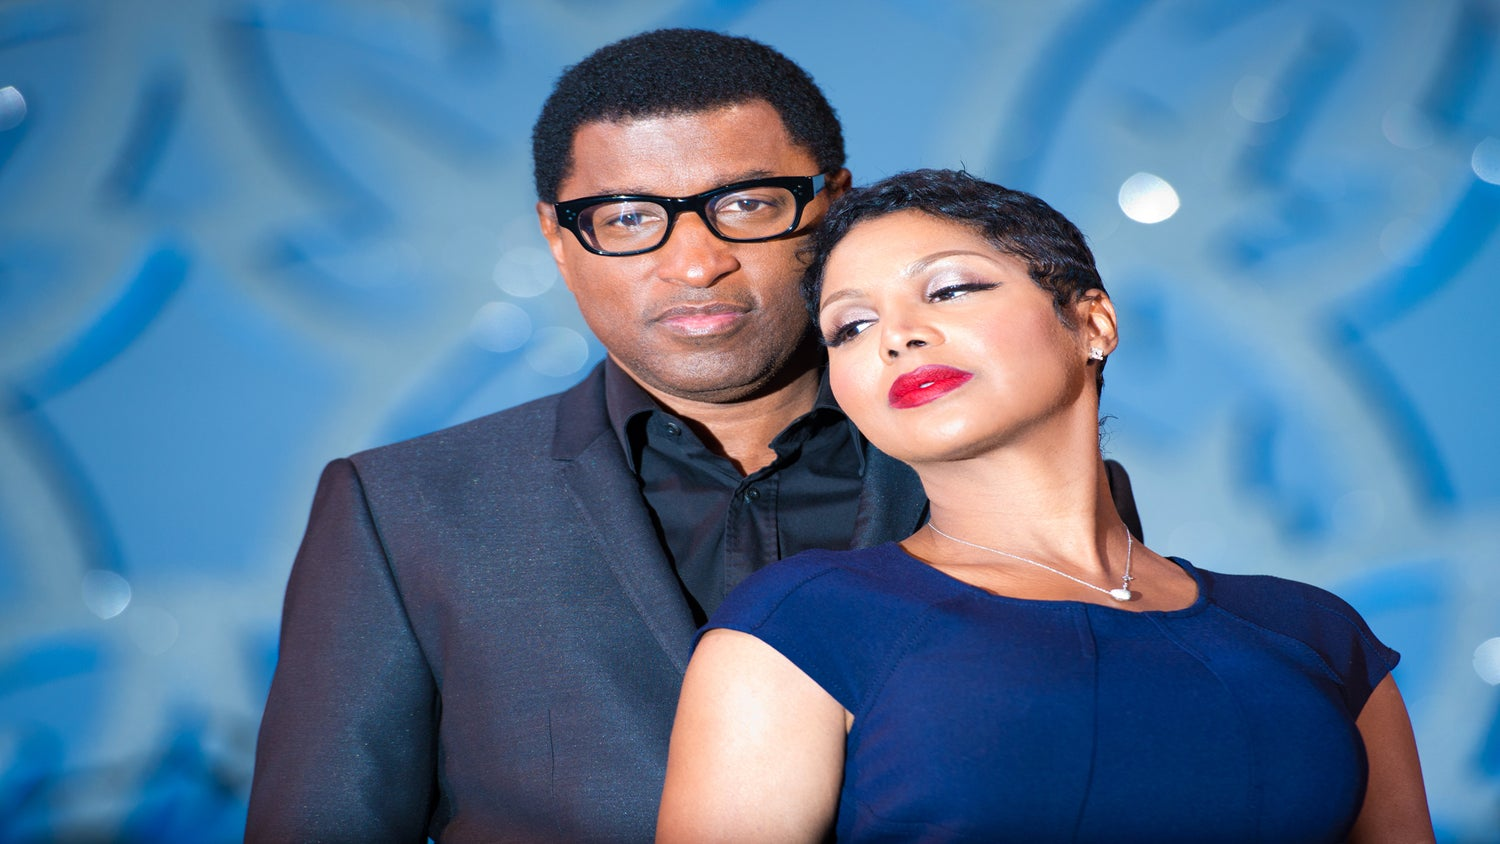 EXCLUSIVE: Toni Braxton and Babyface Talk Broadway Run in 'After Midnight'